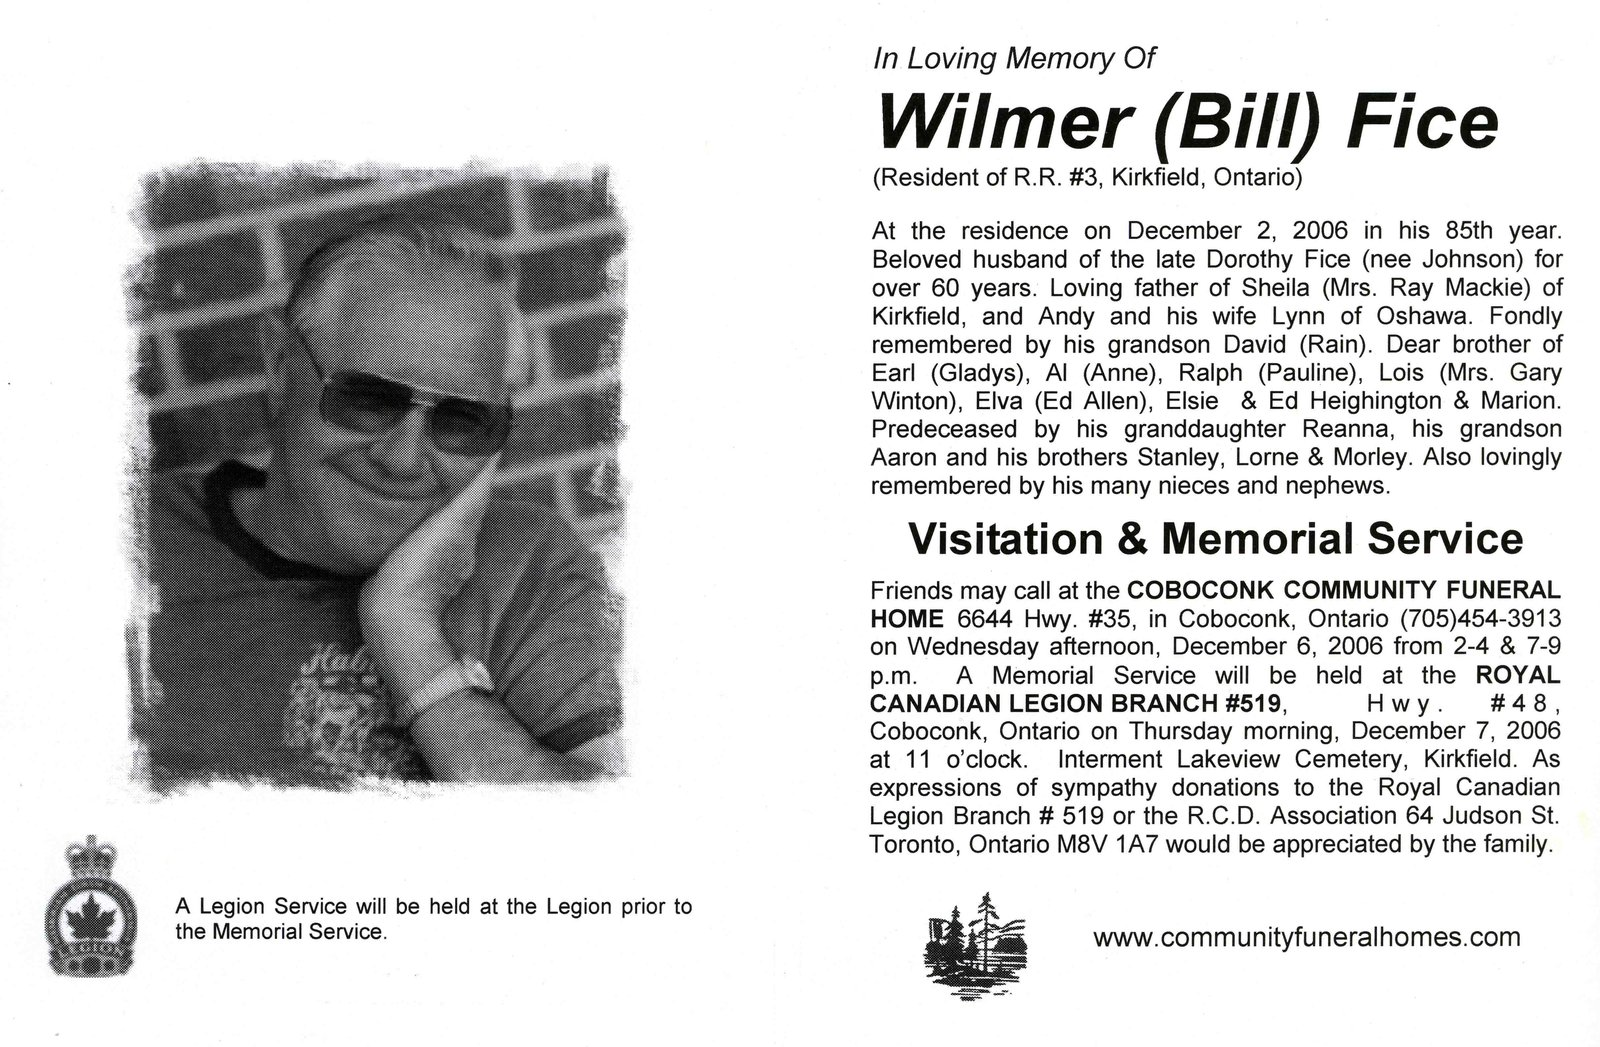 Pages 217-218: Fice, Bill (Wilmer)